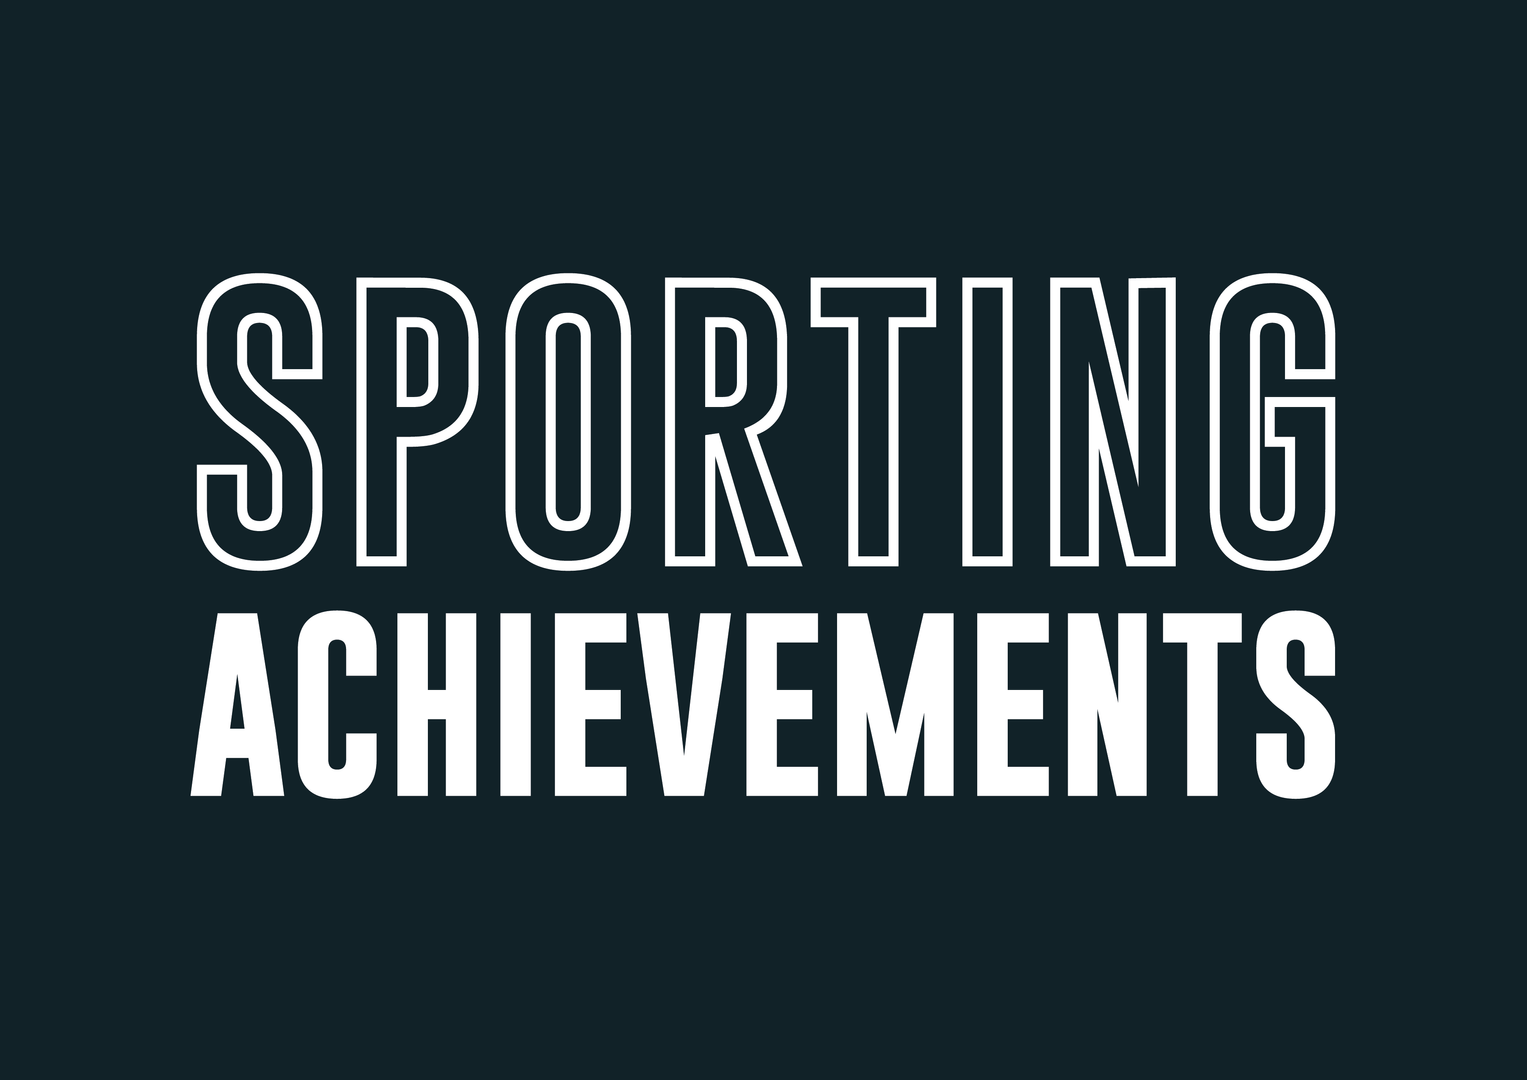 sportingachievements-01.png